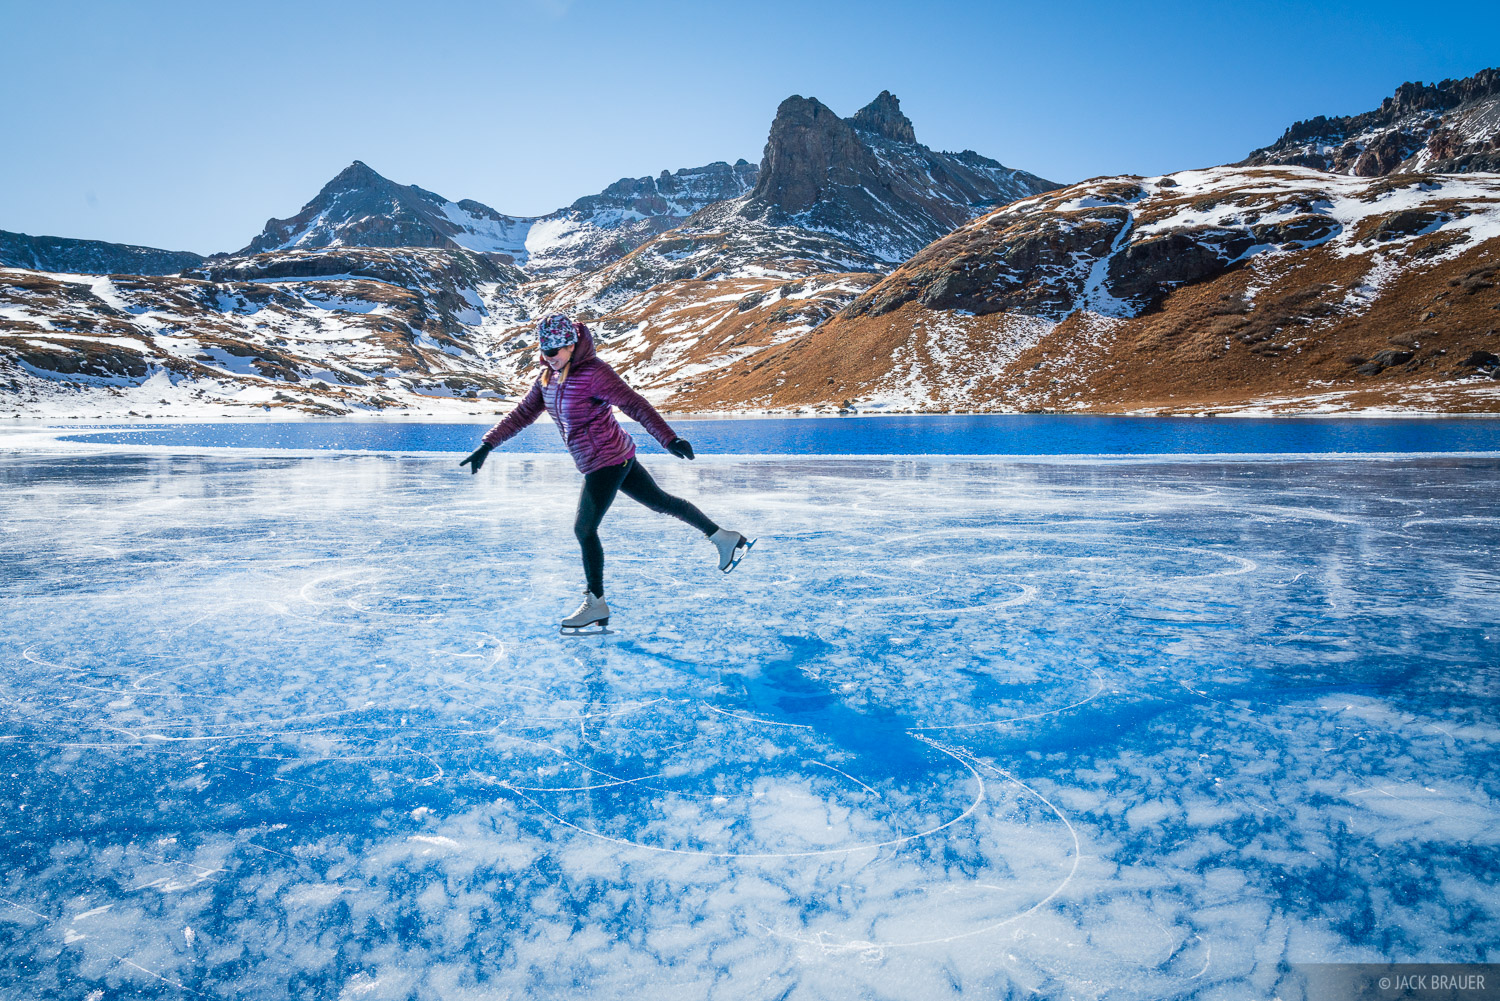 Colorado, Ice Lakes, San Juan Mountains, ice skate, ice skating, November